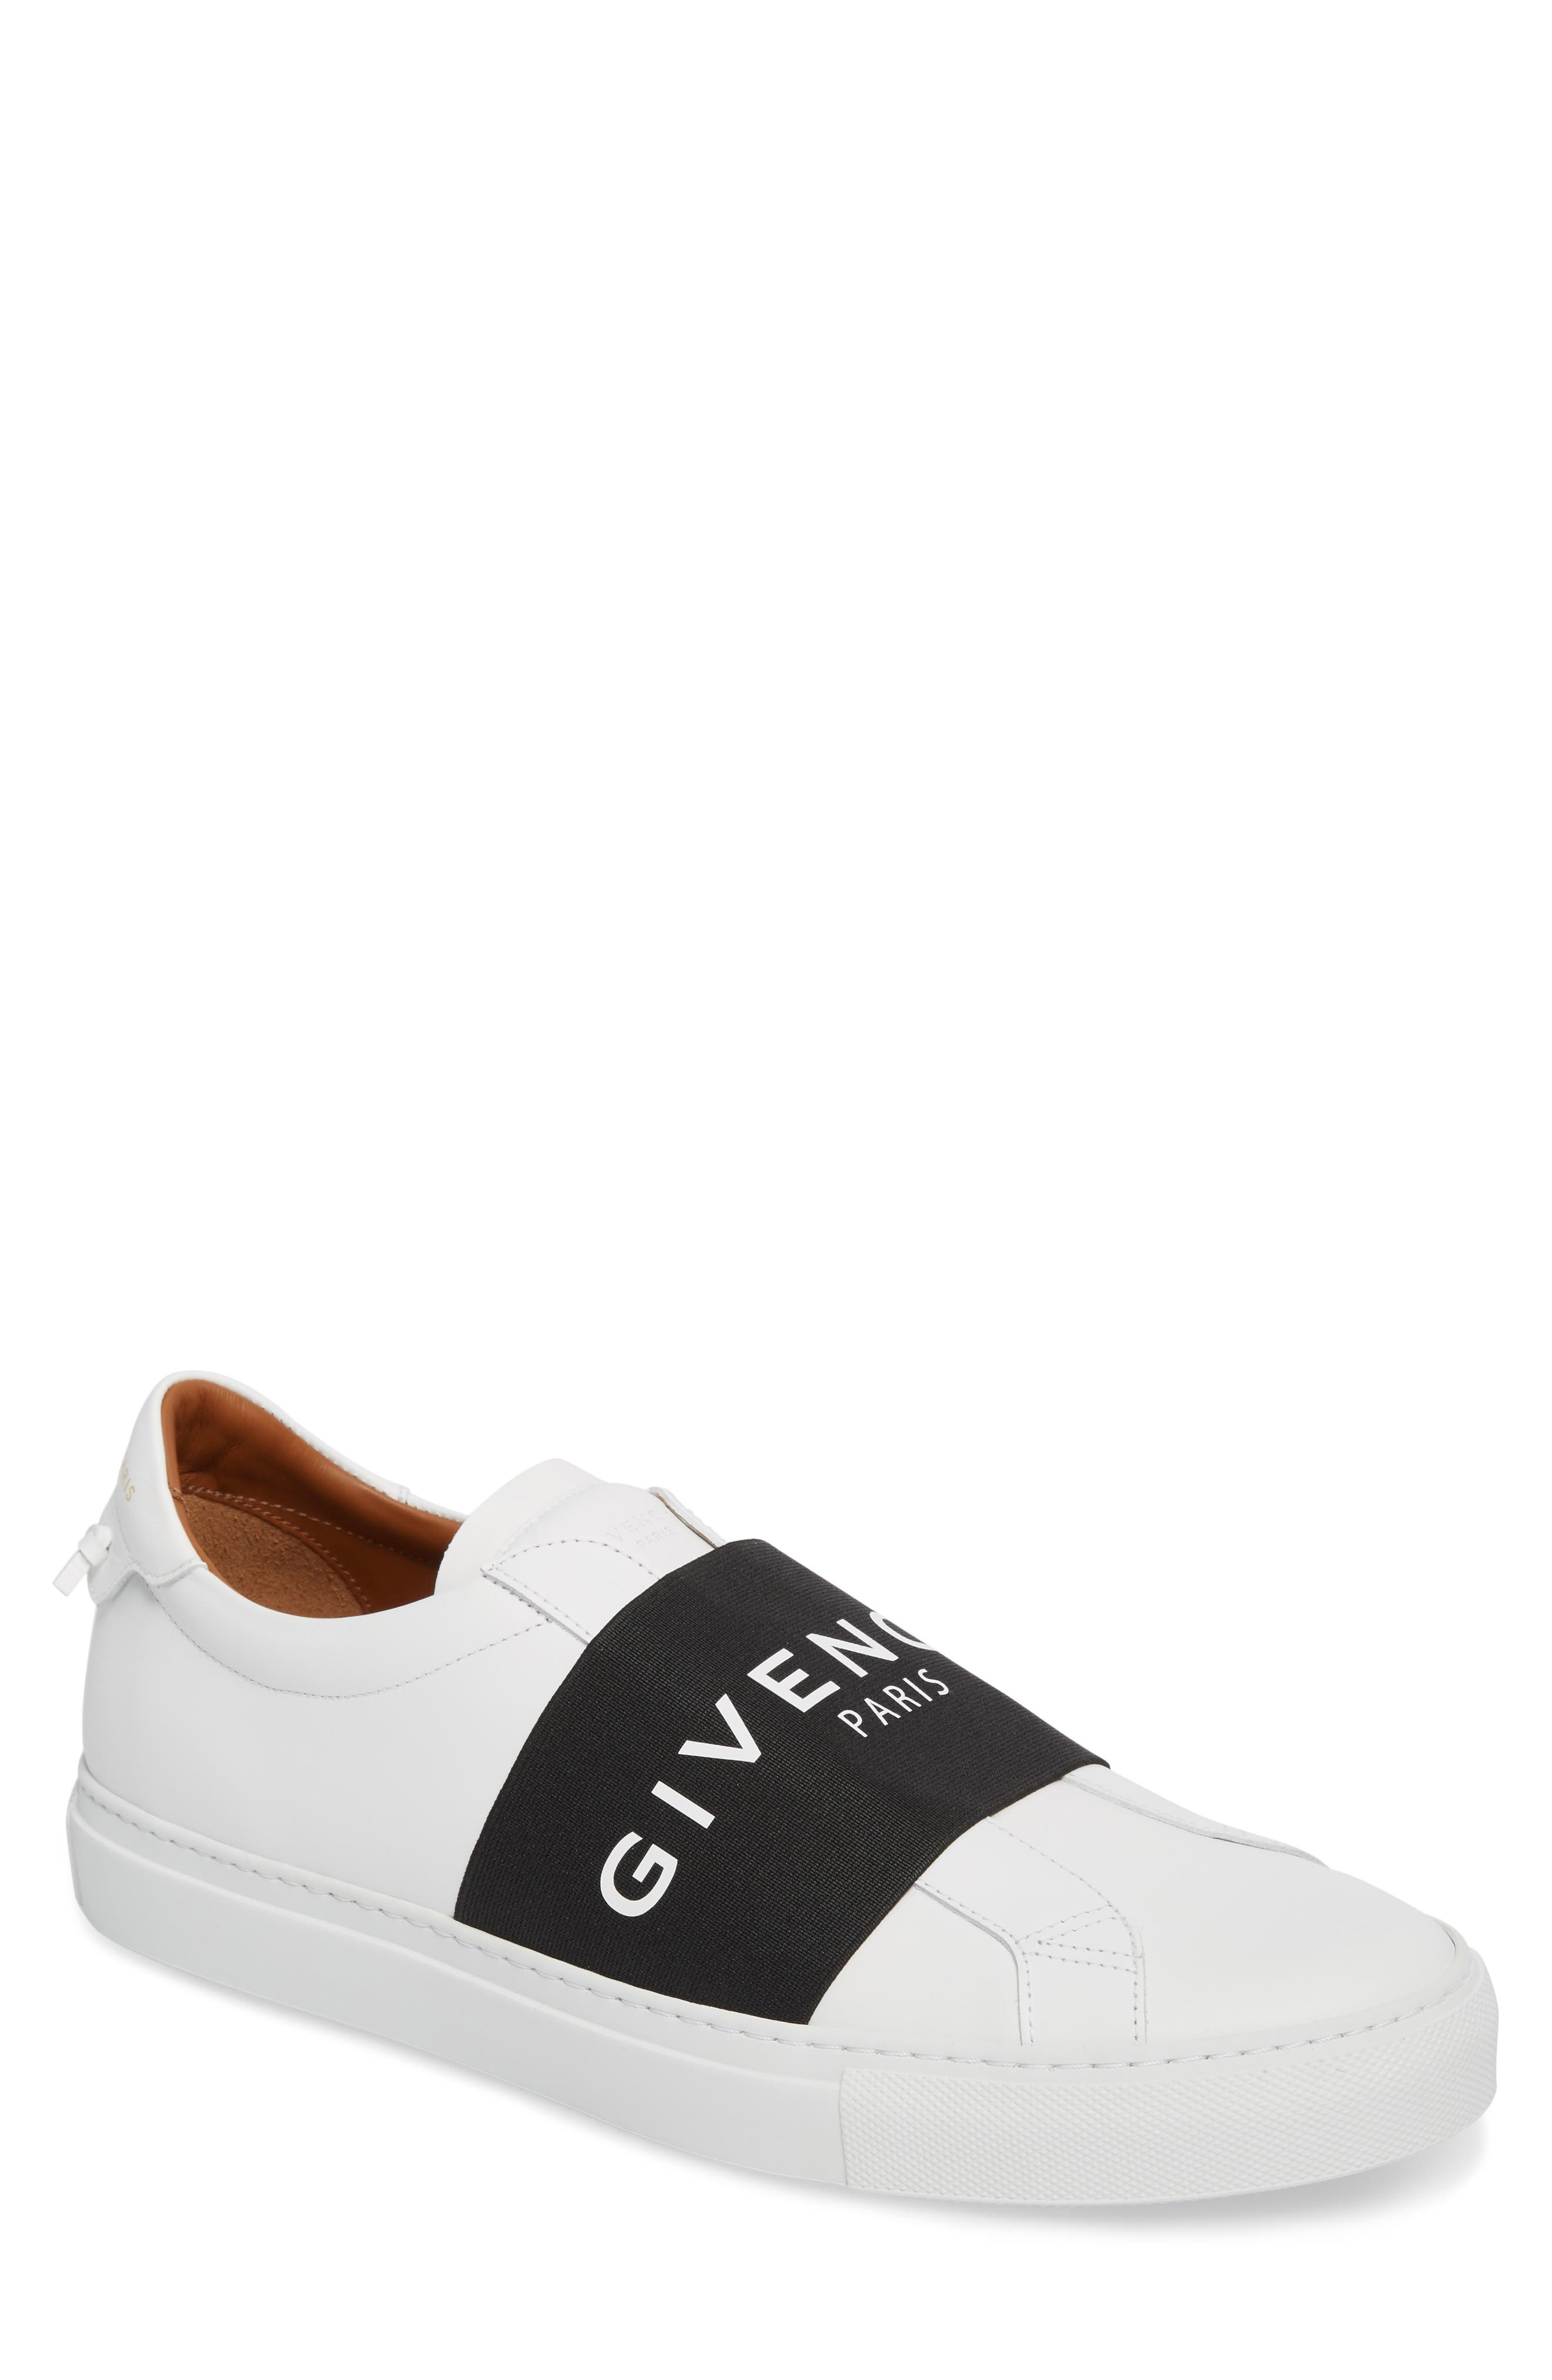 Givenchy Urban Knots Sneaker (Men)